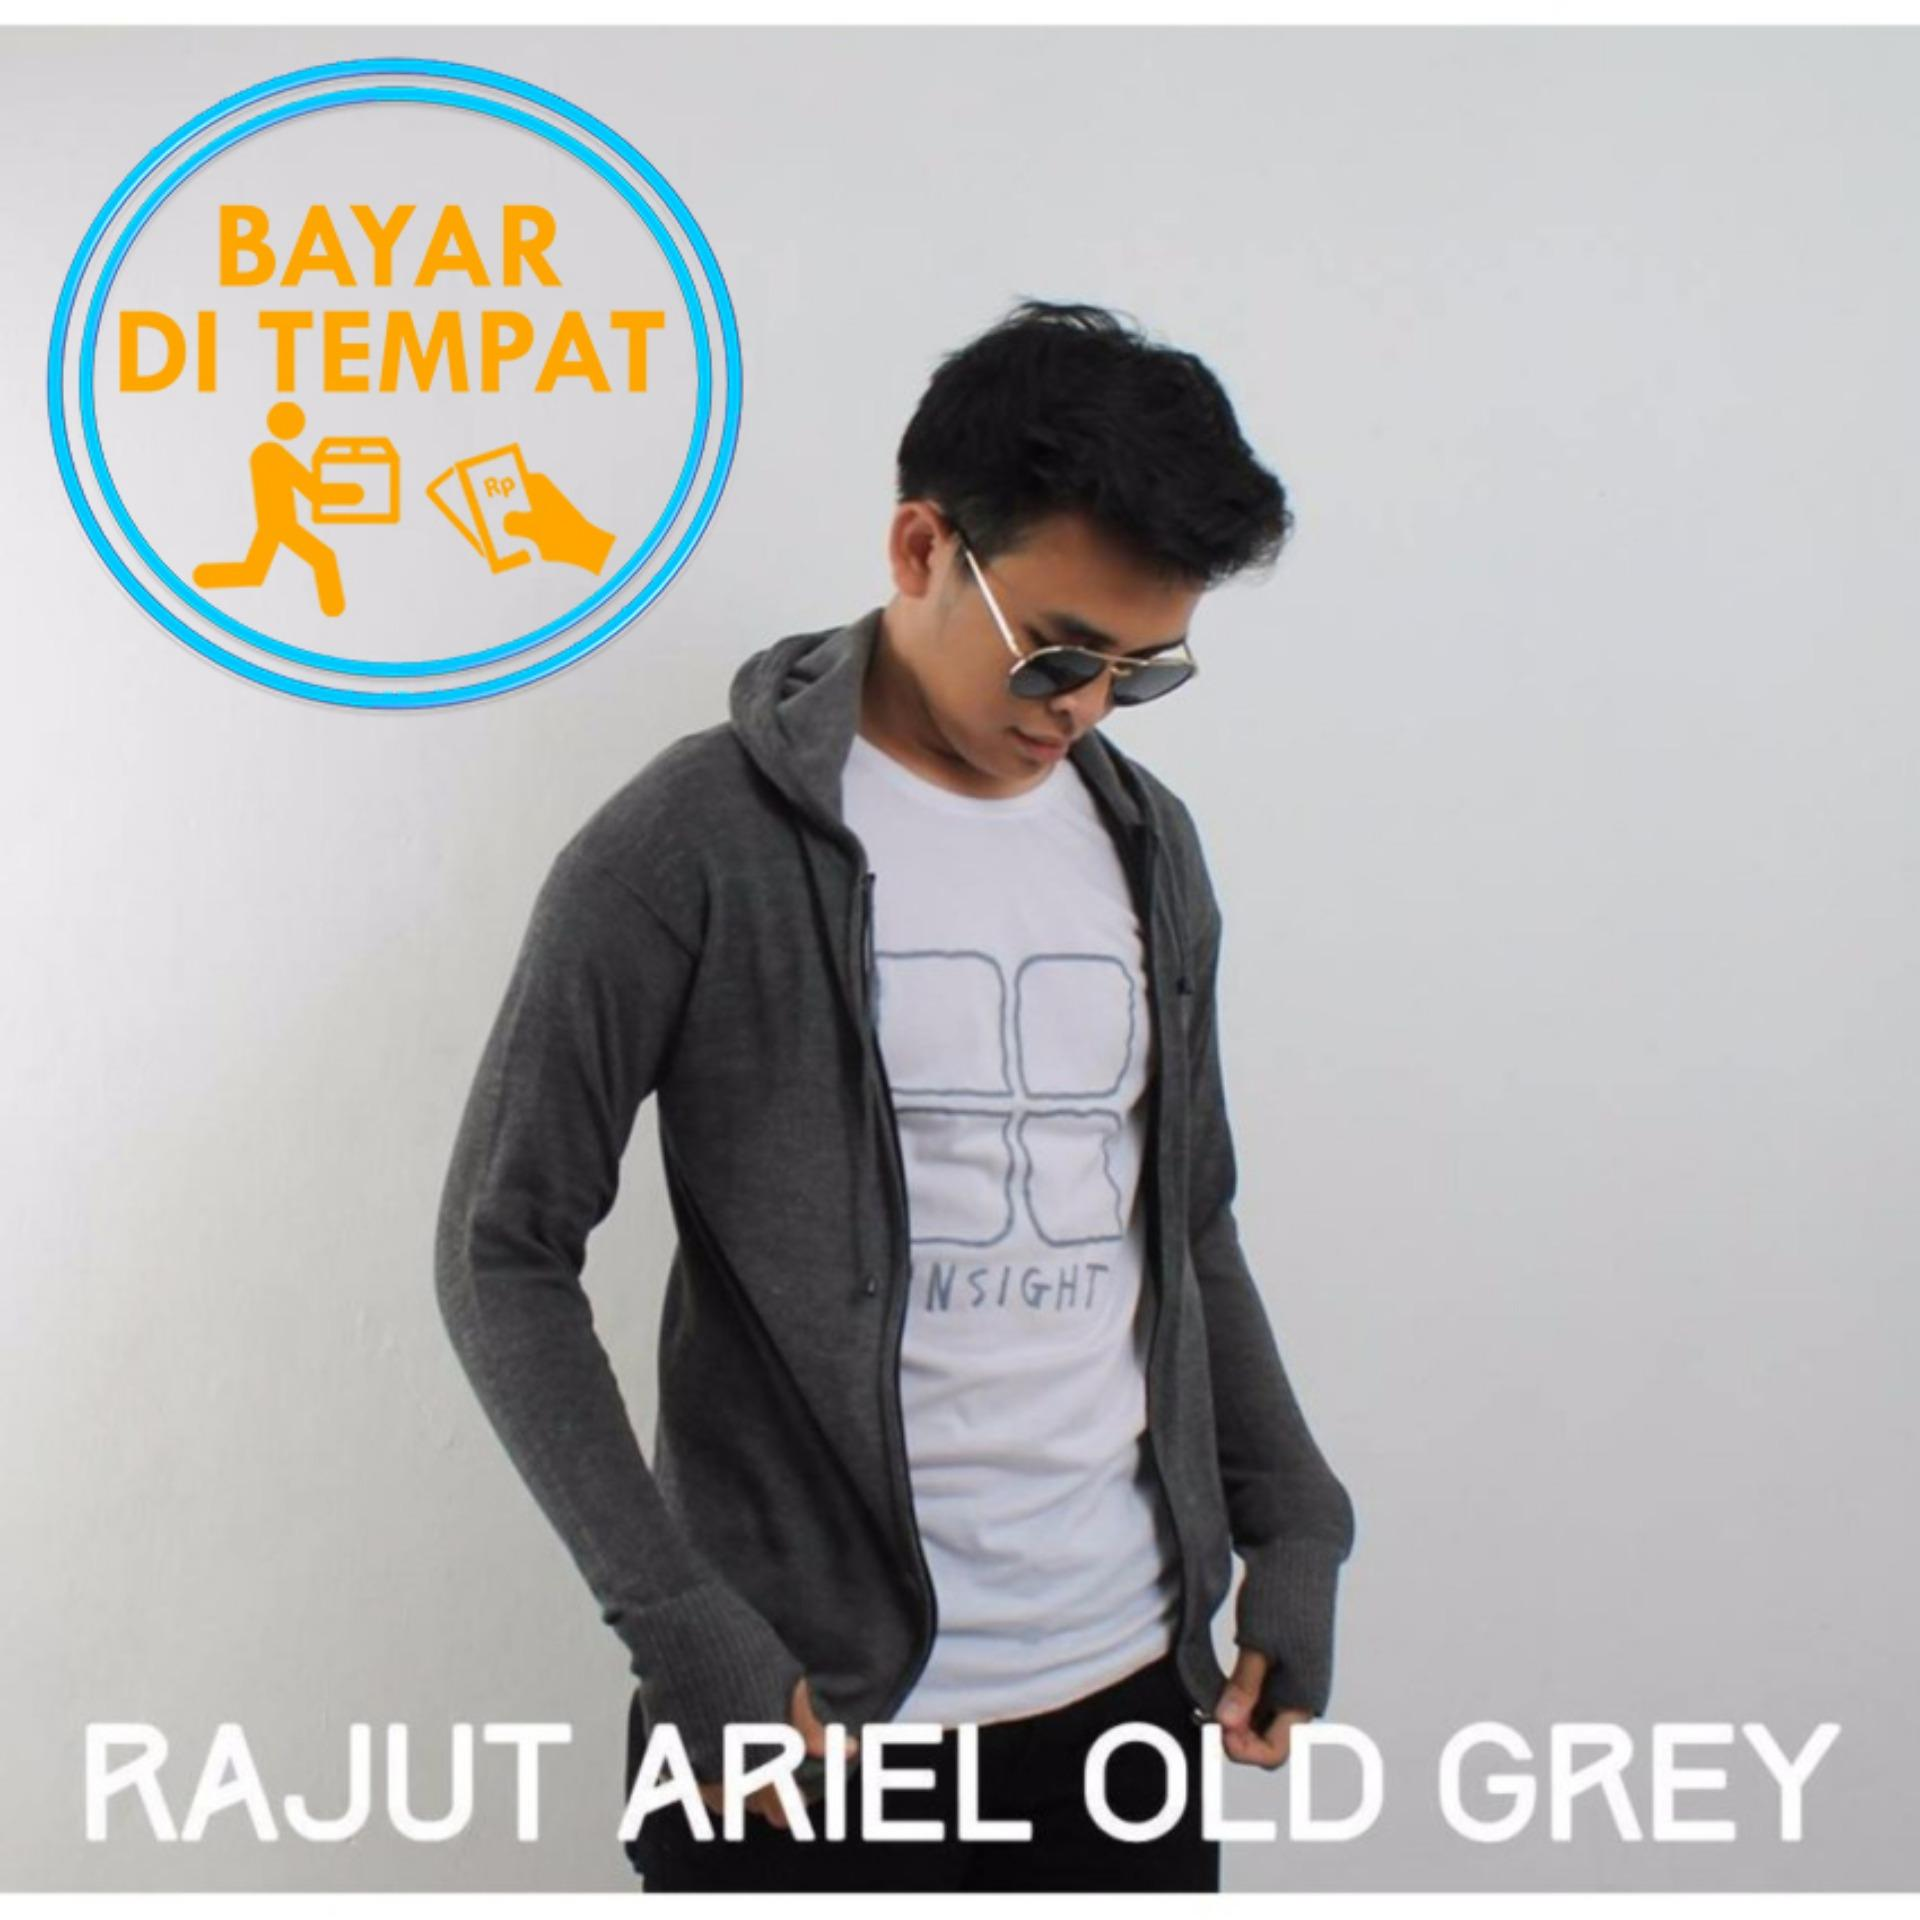 Jual Sweater Rajut Round Hand Finger Dark Grey Jempol Bolong Branded Original